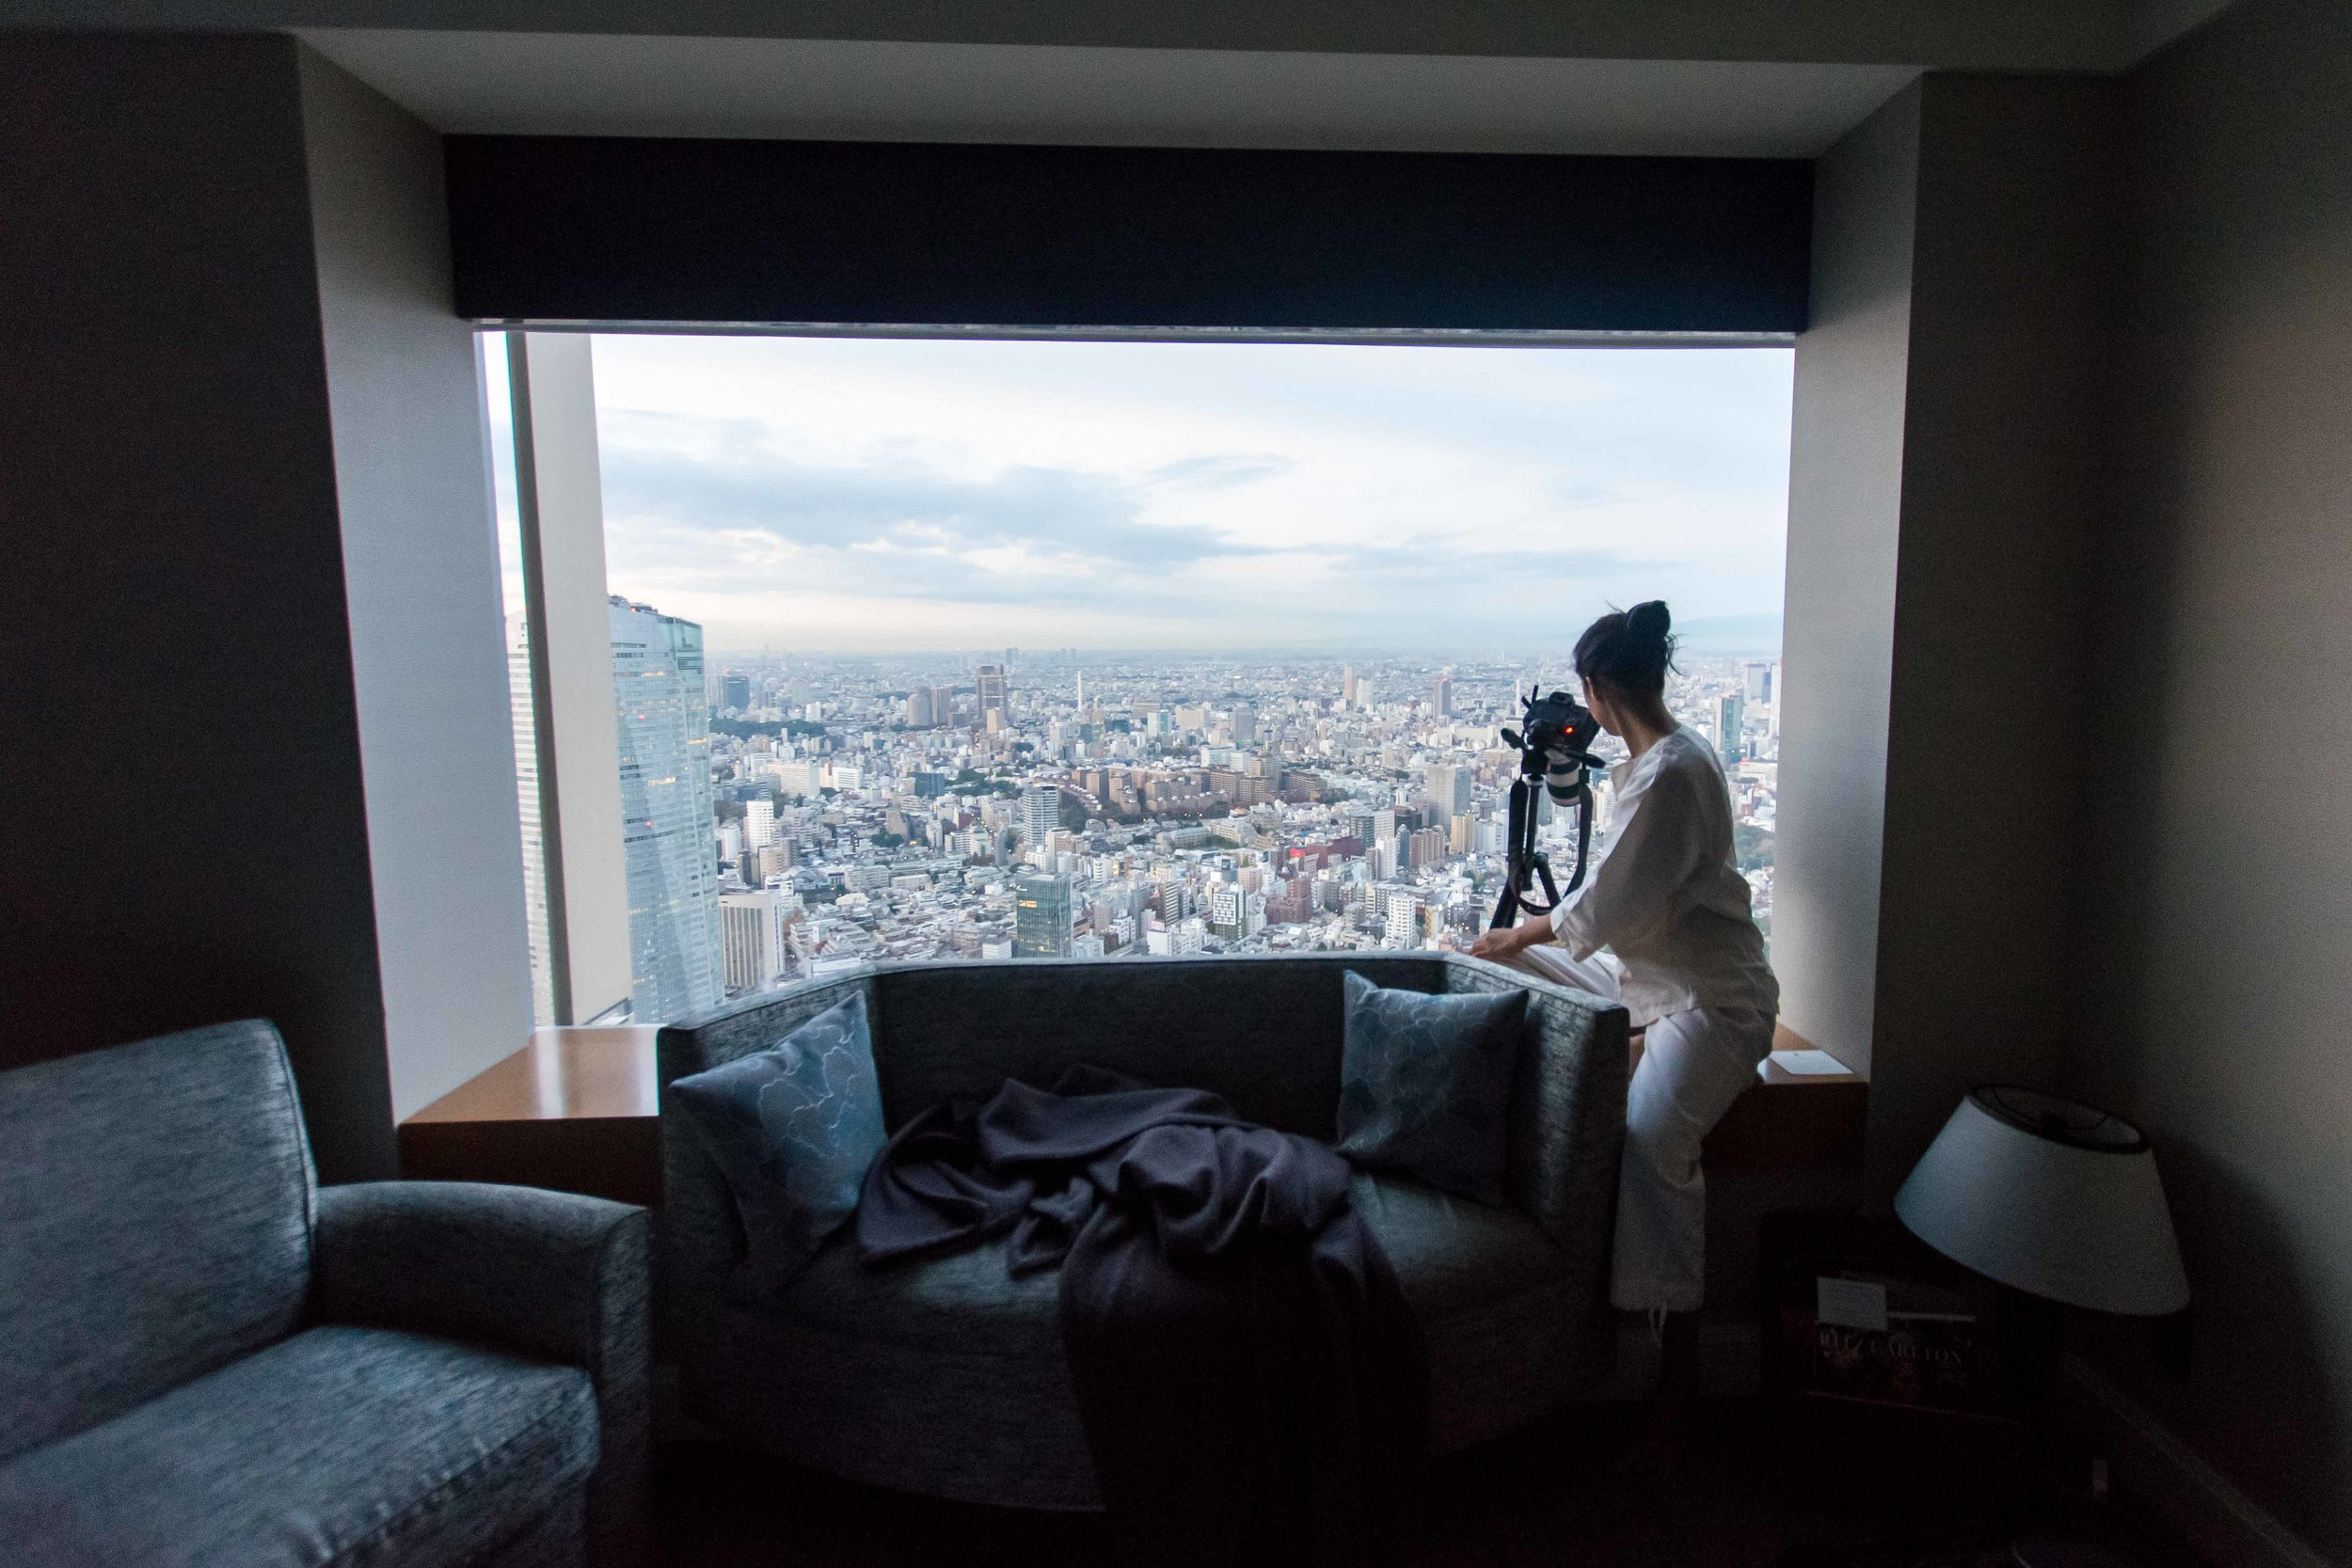 Our room at The Ritz-Carlton Tokyo